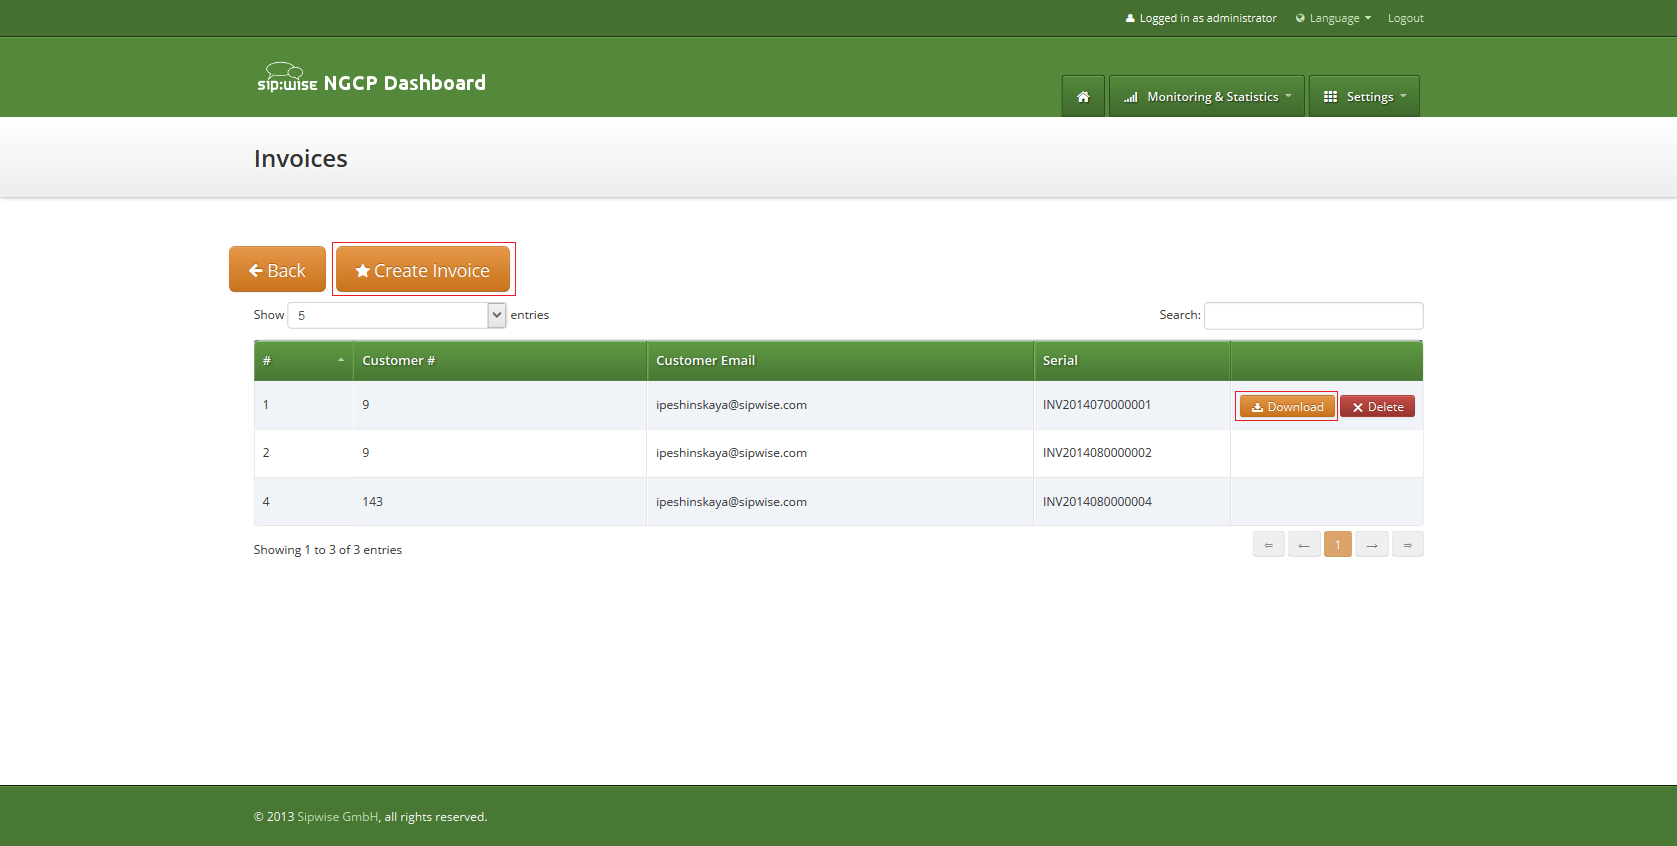 Invoice Management Interface